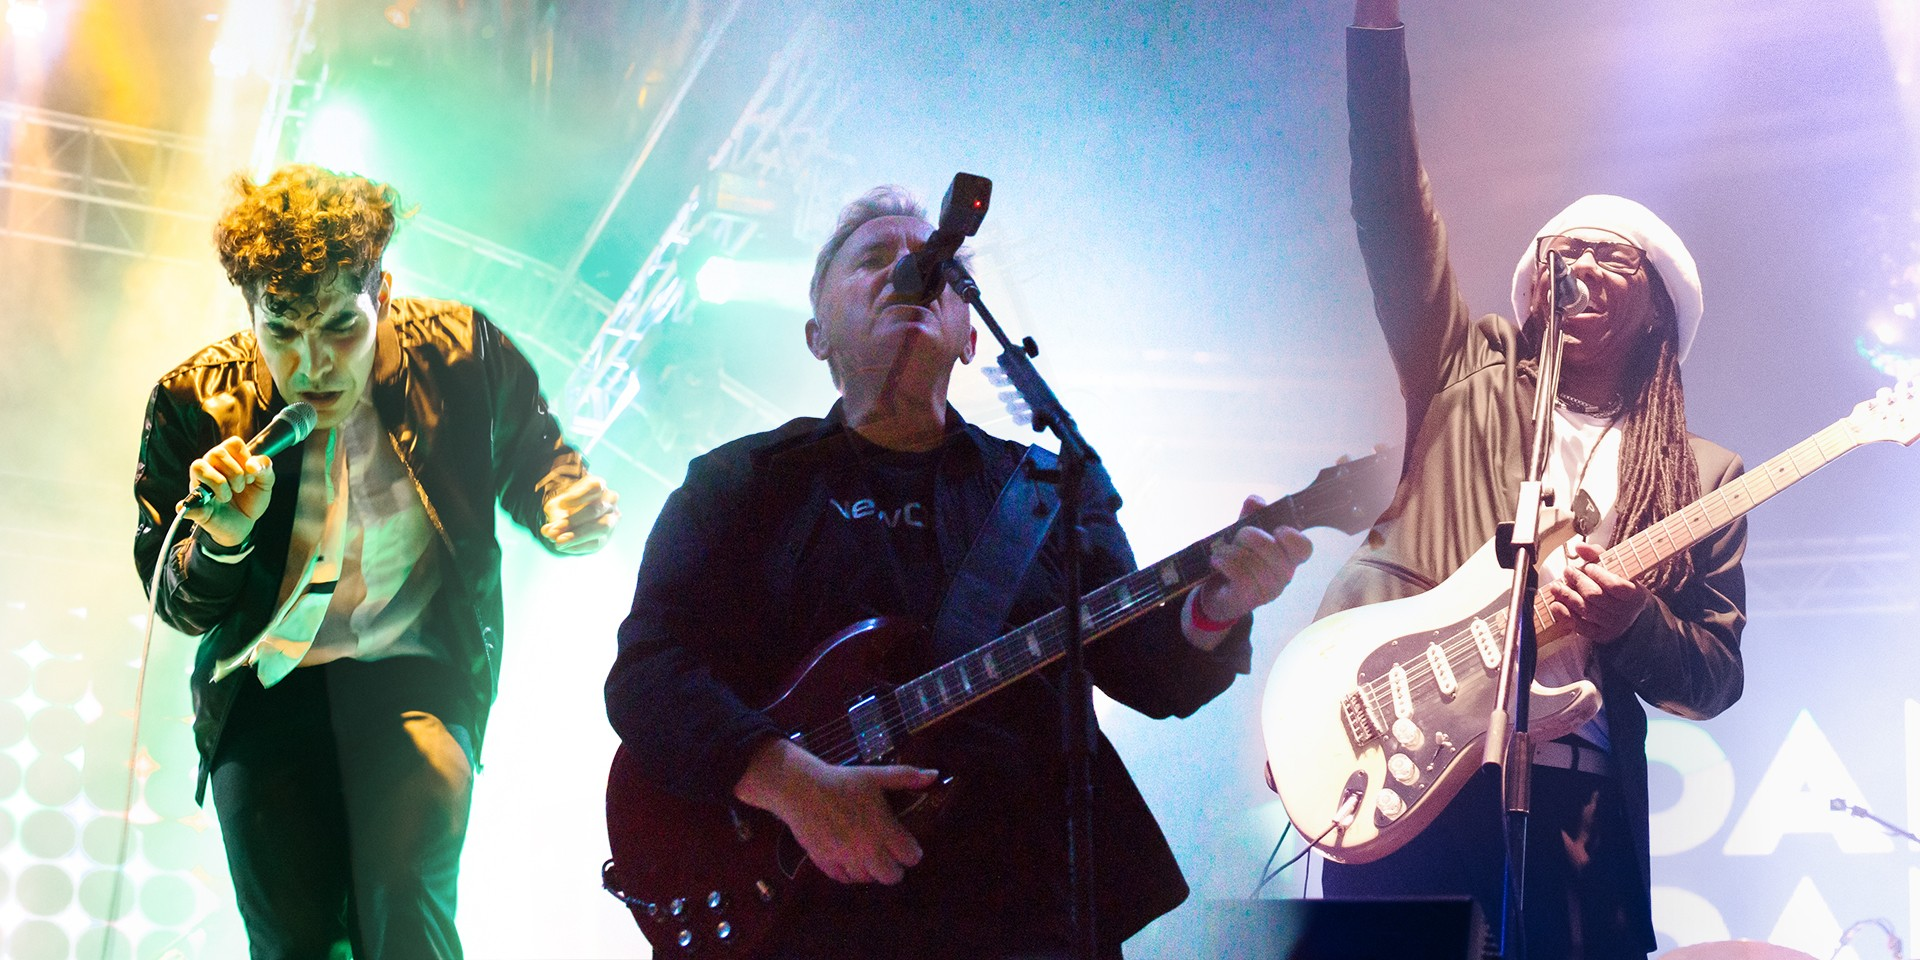 PHOTO GALLERY: Clockenflap 2015 Day 3 — New Order, CHIC, Neon Indian, Bo Ningen & More